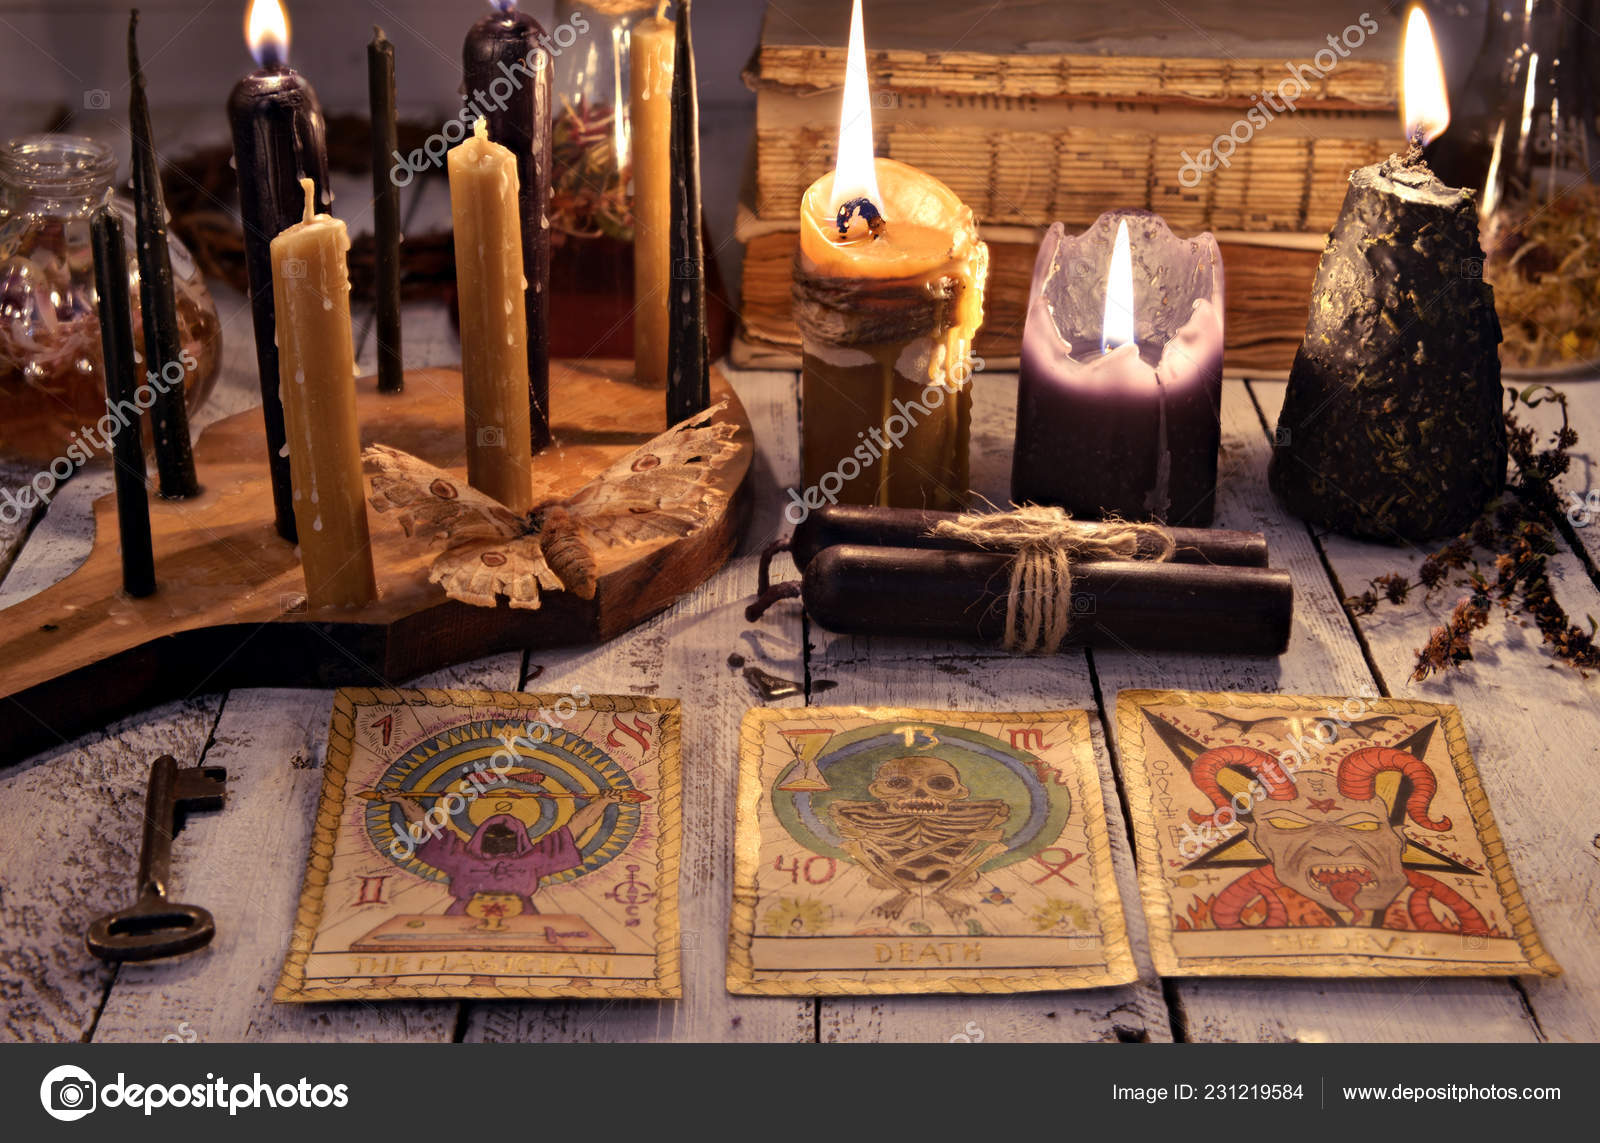 Still Life Tarot Cards Black Candles Key Books Old Table